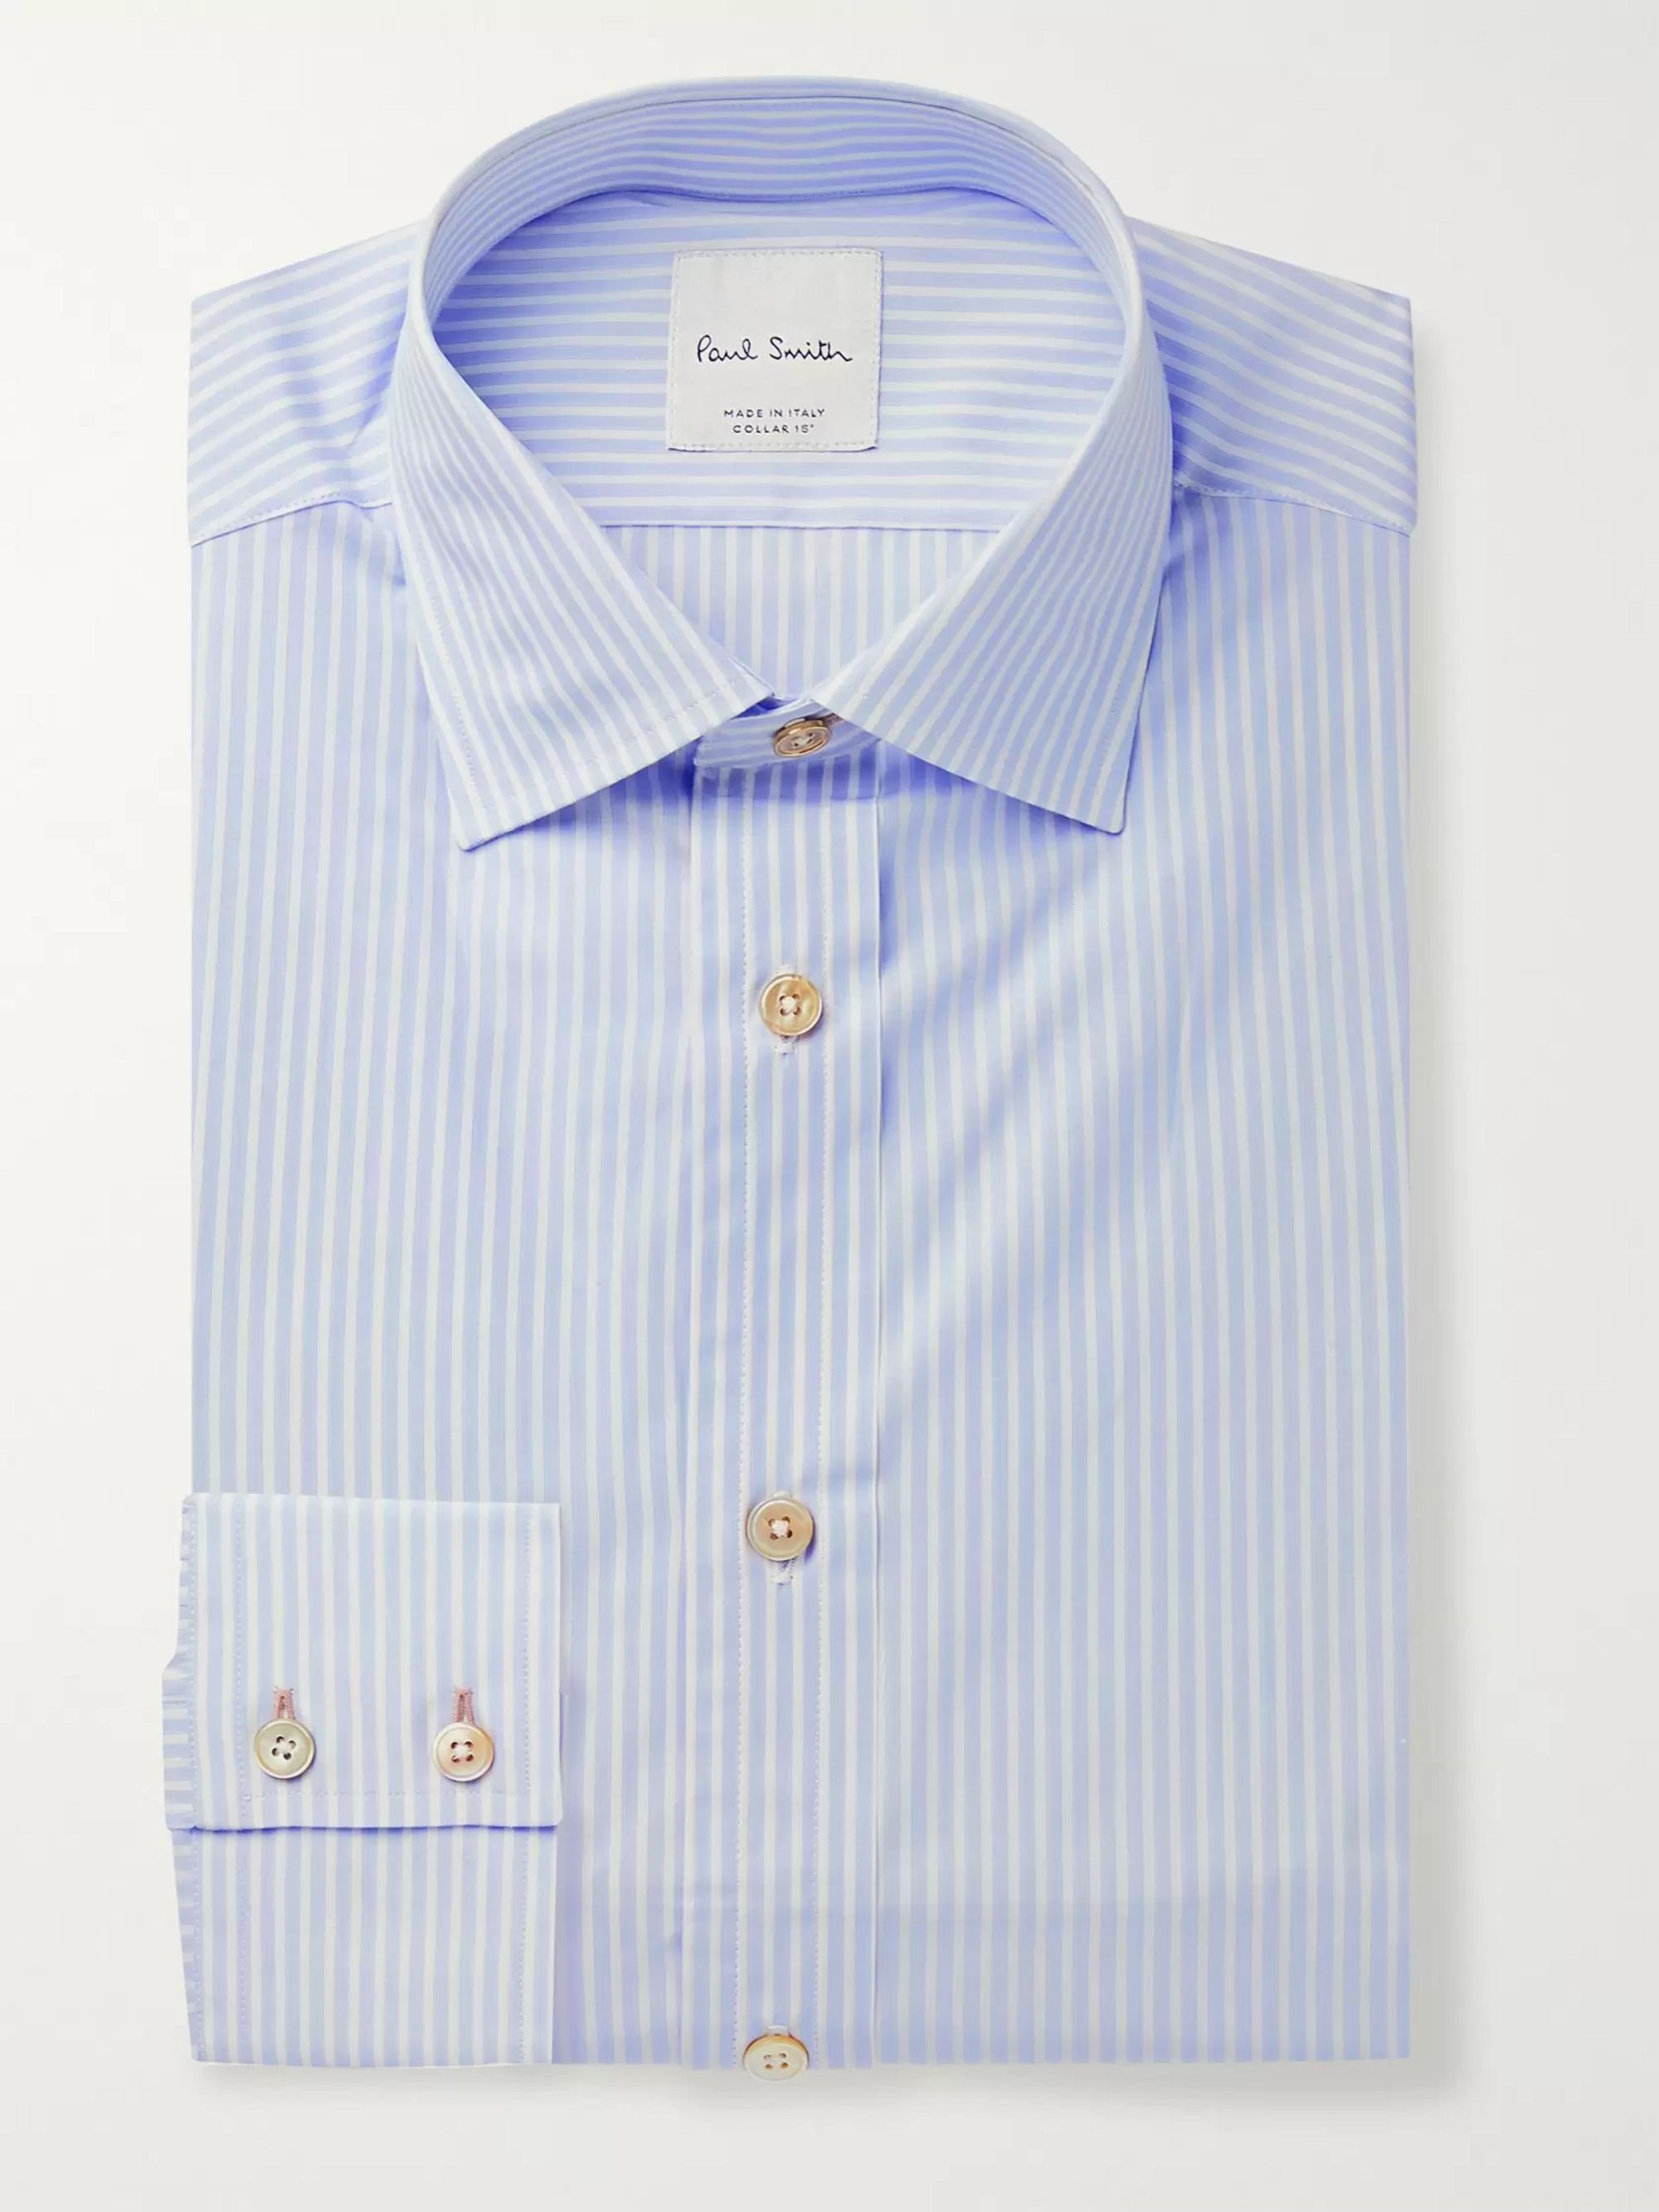 Paul Smith Slim-Fit Cutaway-Collar Striped Cotton-Poplin Shirt